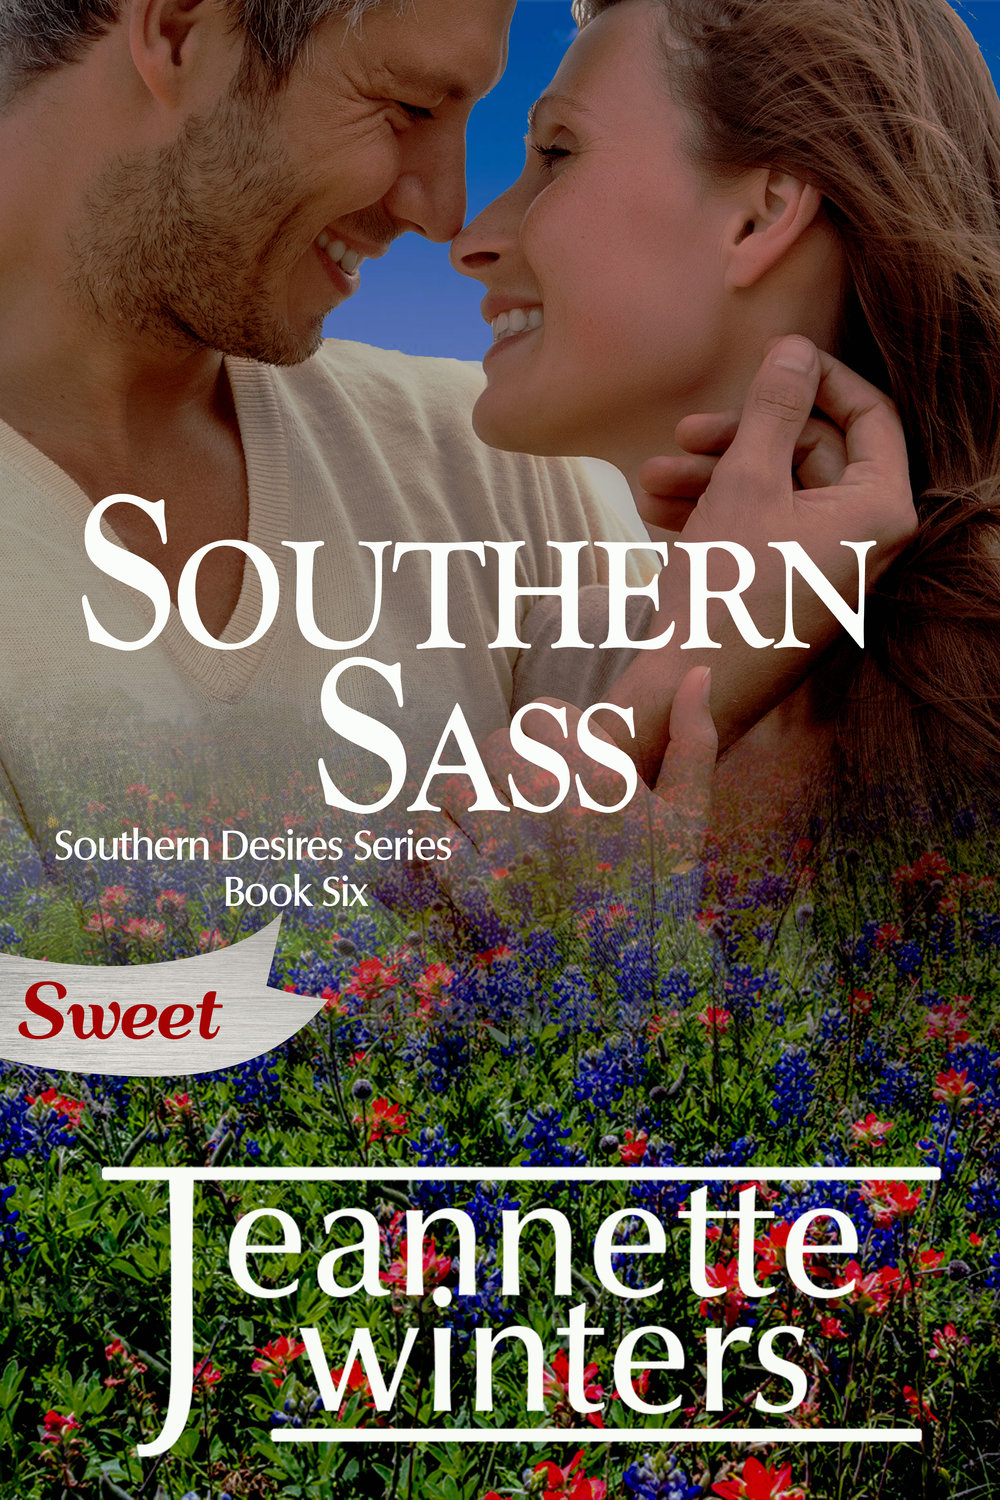 Enjoy this clean and wholesome version of Southern Sass. Same story without the spice. The Sweet version still contains adult situations and relationships. If you prefer the hotter version be sure to download the original.  Sissie Entwistle had a natural gift for spotting soulmates, even for those who didn't believe they existed. But through all her years of matchmaking, there was one thing that seemed hopeless. Her own happily ever after.  Ryan Watson was a tycoon in business. He played by his set of rules, and nothing stood between him and what he wanted.  When their worlds collide, the sparks ignite. Will the fire that burns be snuffed out when they find themselves in the midst of a terrorist threat? Or will the fight for their lives cost them a chance at true love?